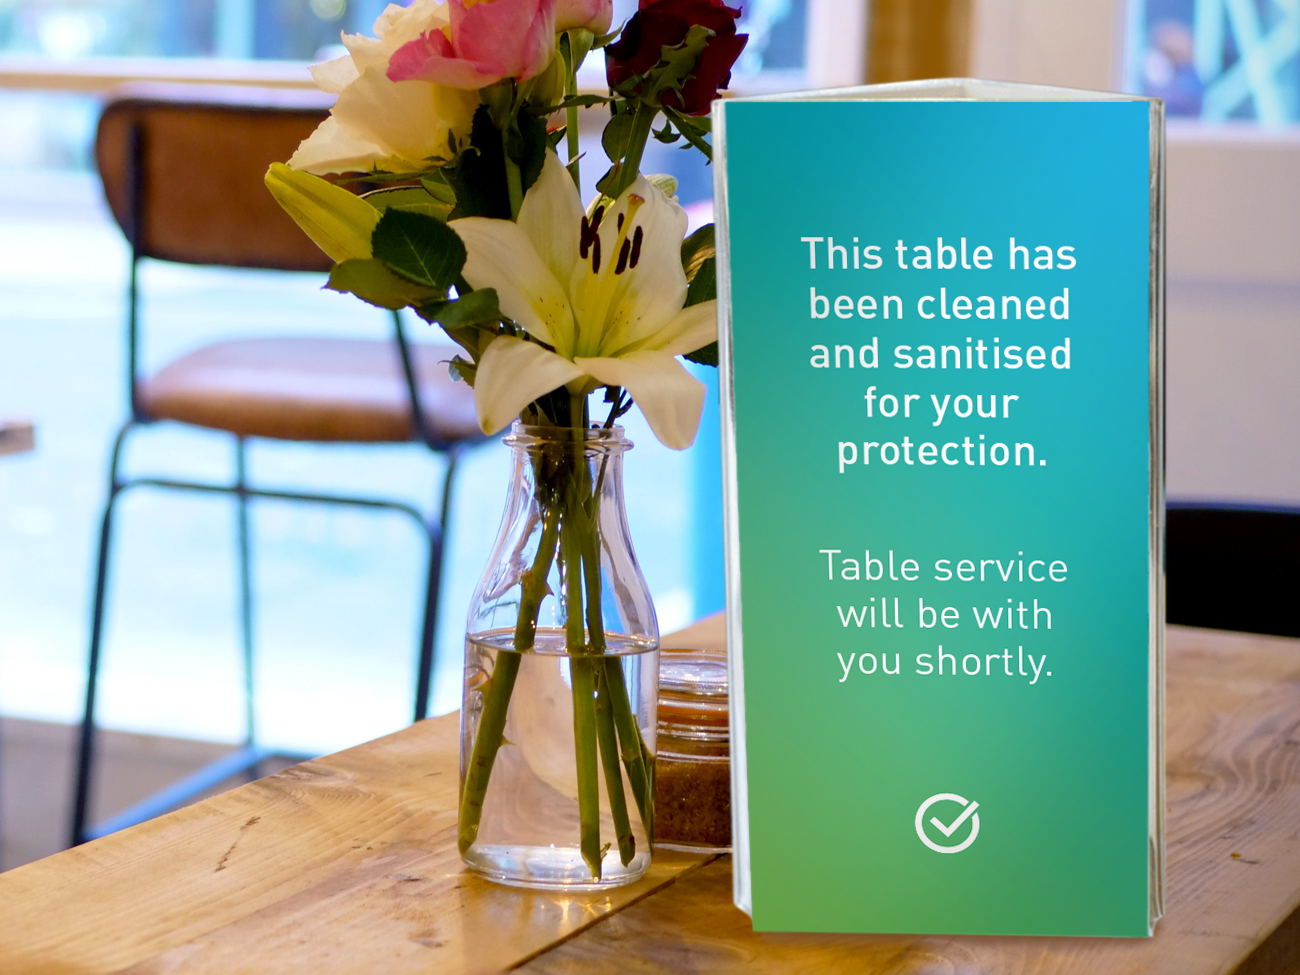 Covid Clean cafe sanitised table signage